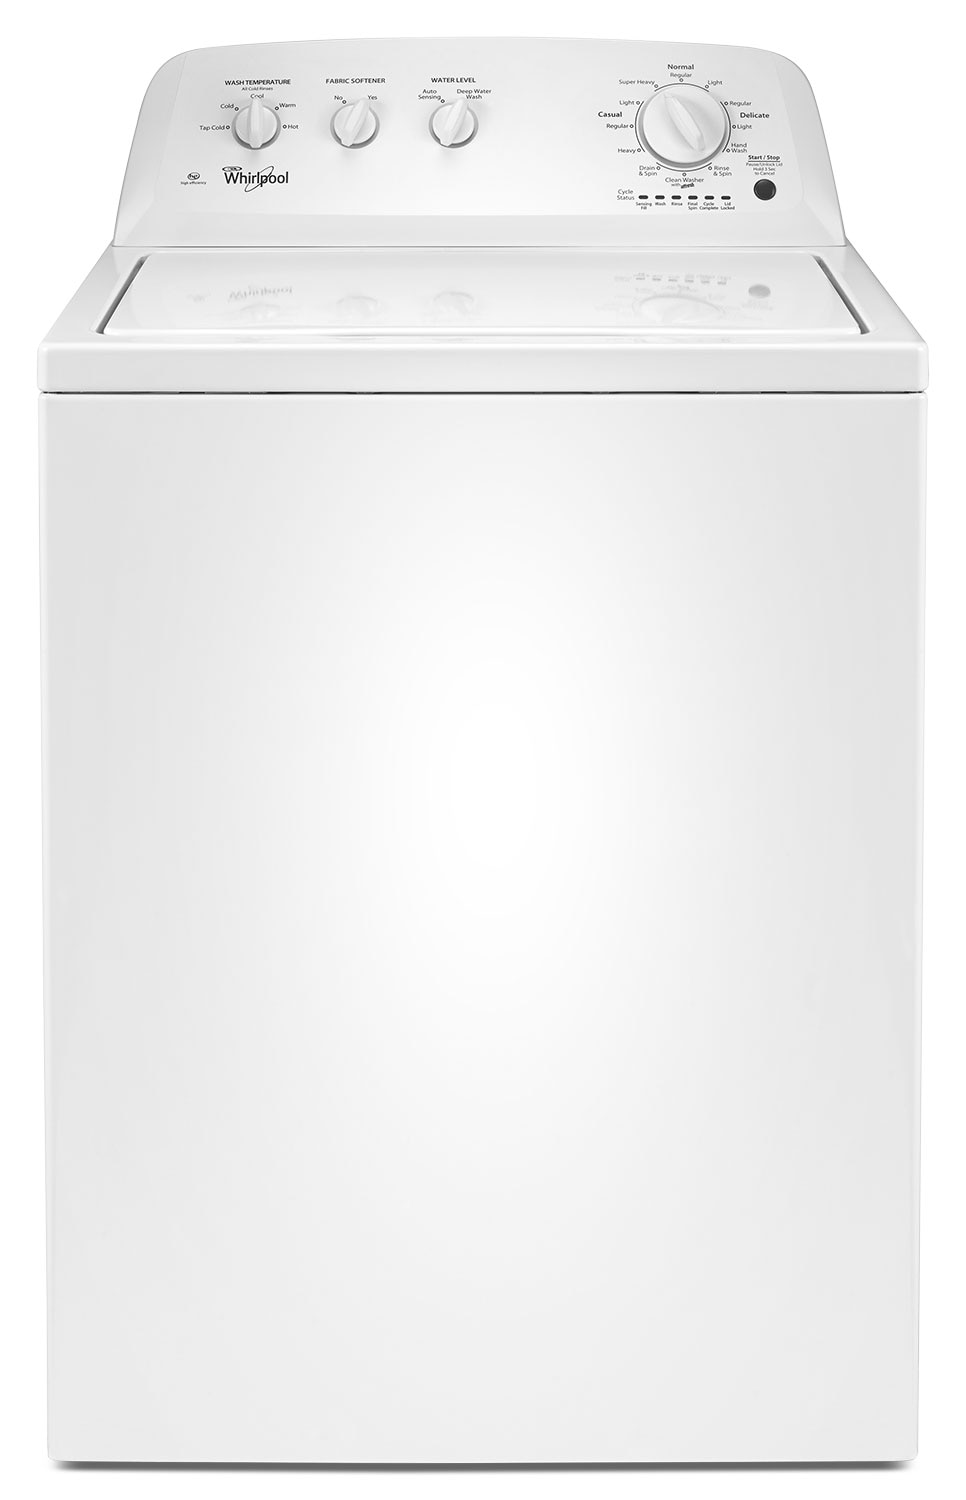 Whirlpool White Top-Load Washer (4.0 Cu. Ft. IEC) - WTW4616FW